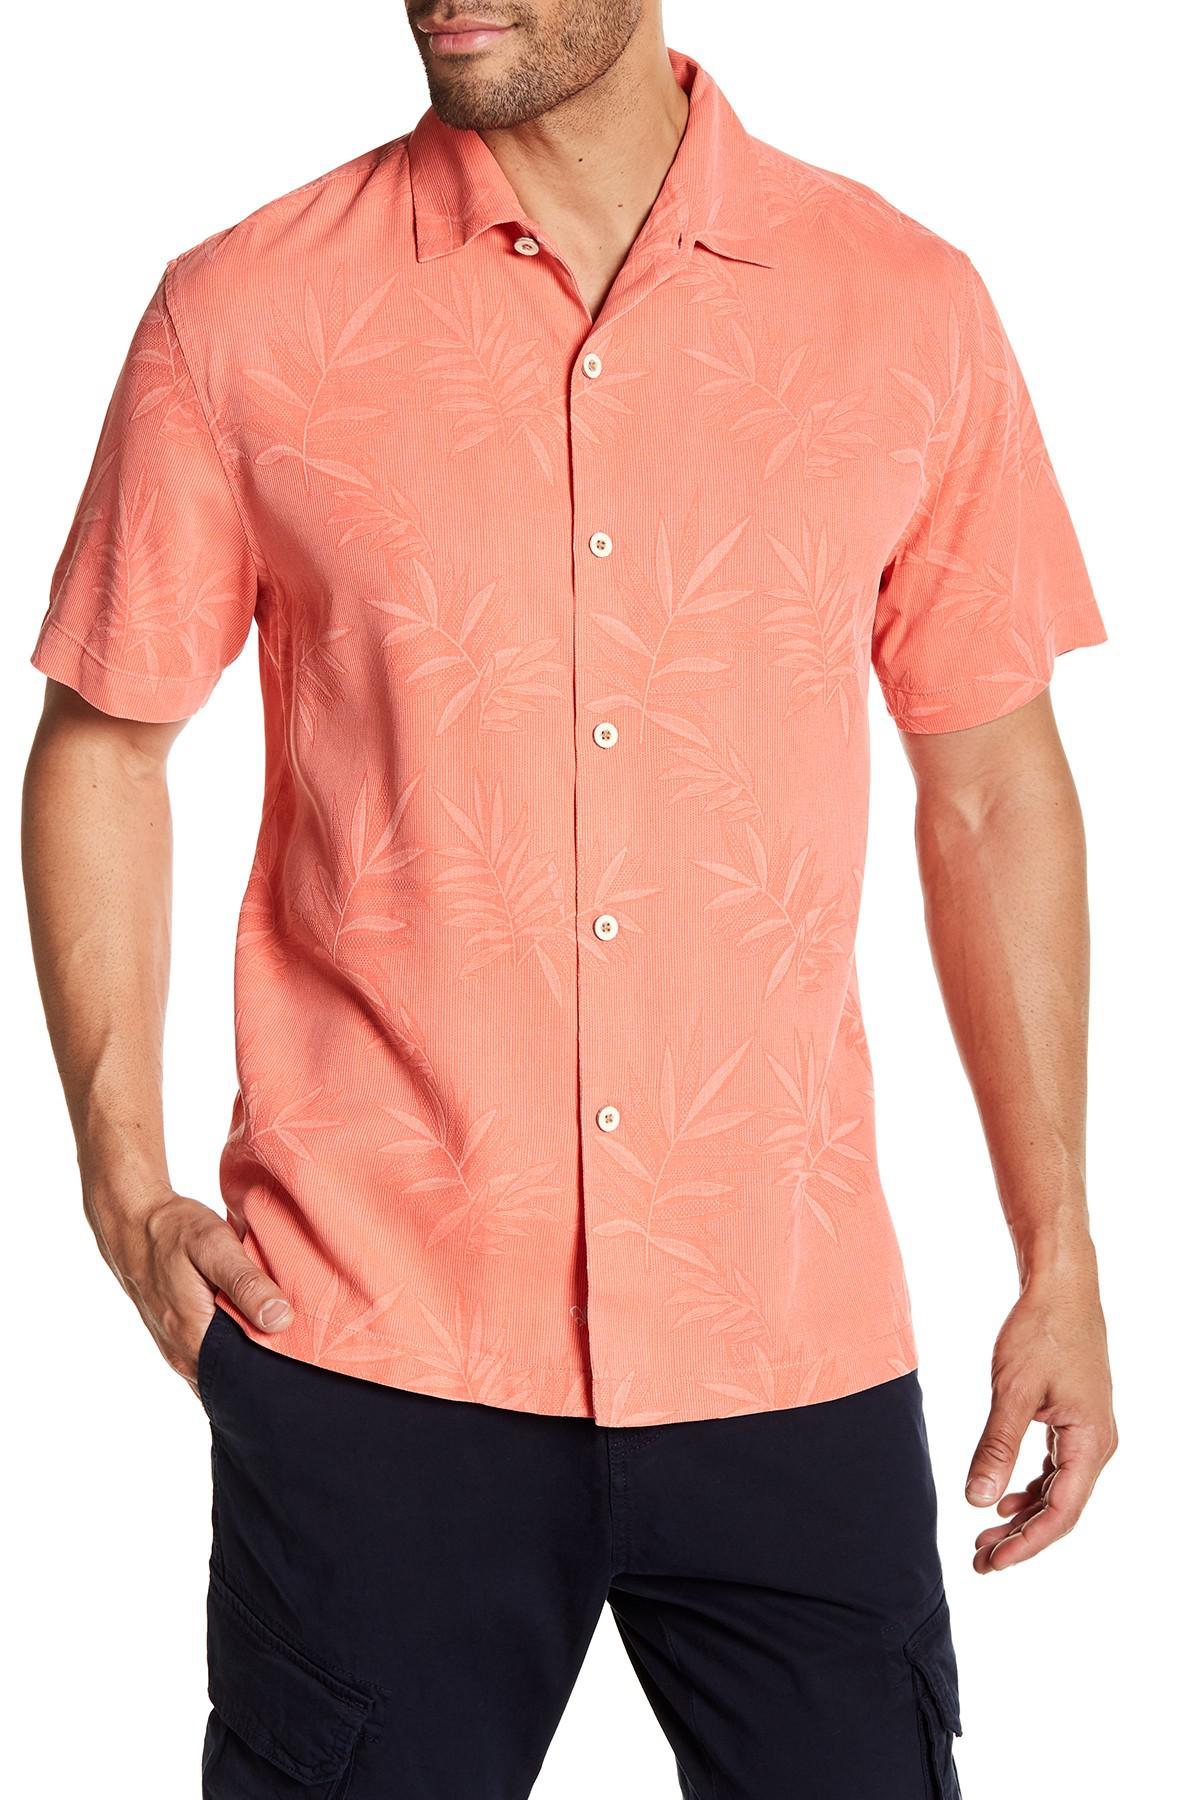 856f406d Lyst - Tommy Bahama Luau Floral Silk Shirt for Men